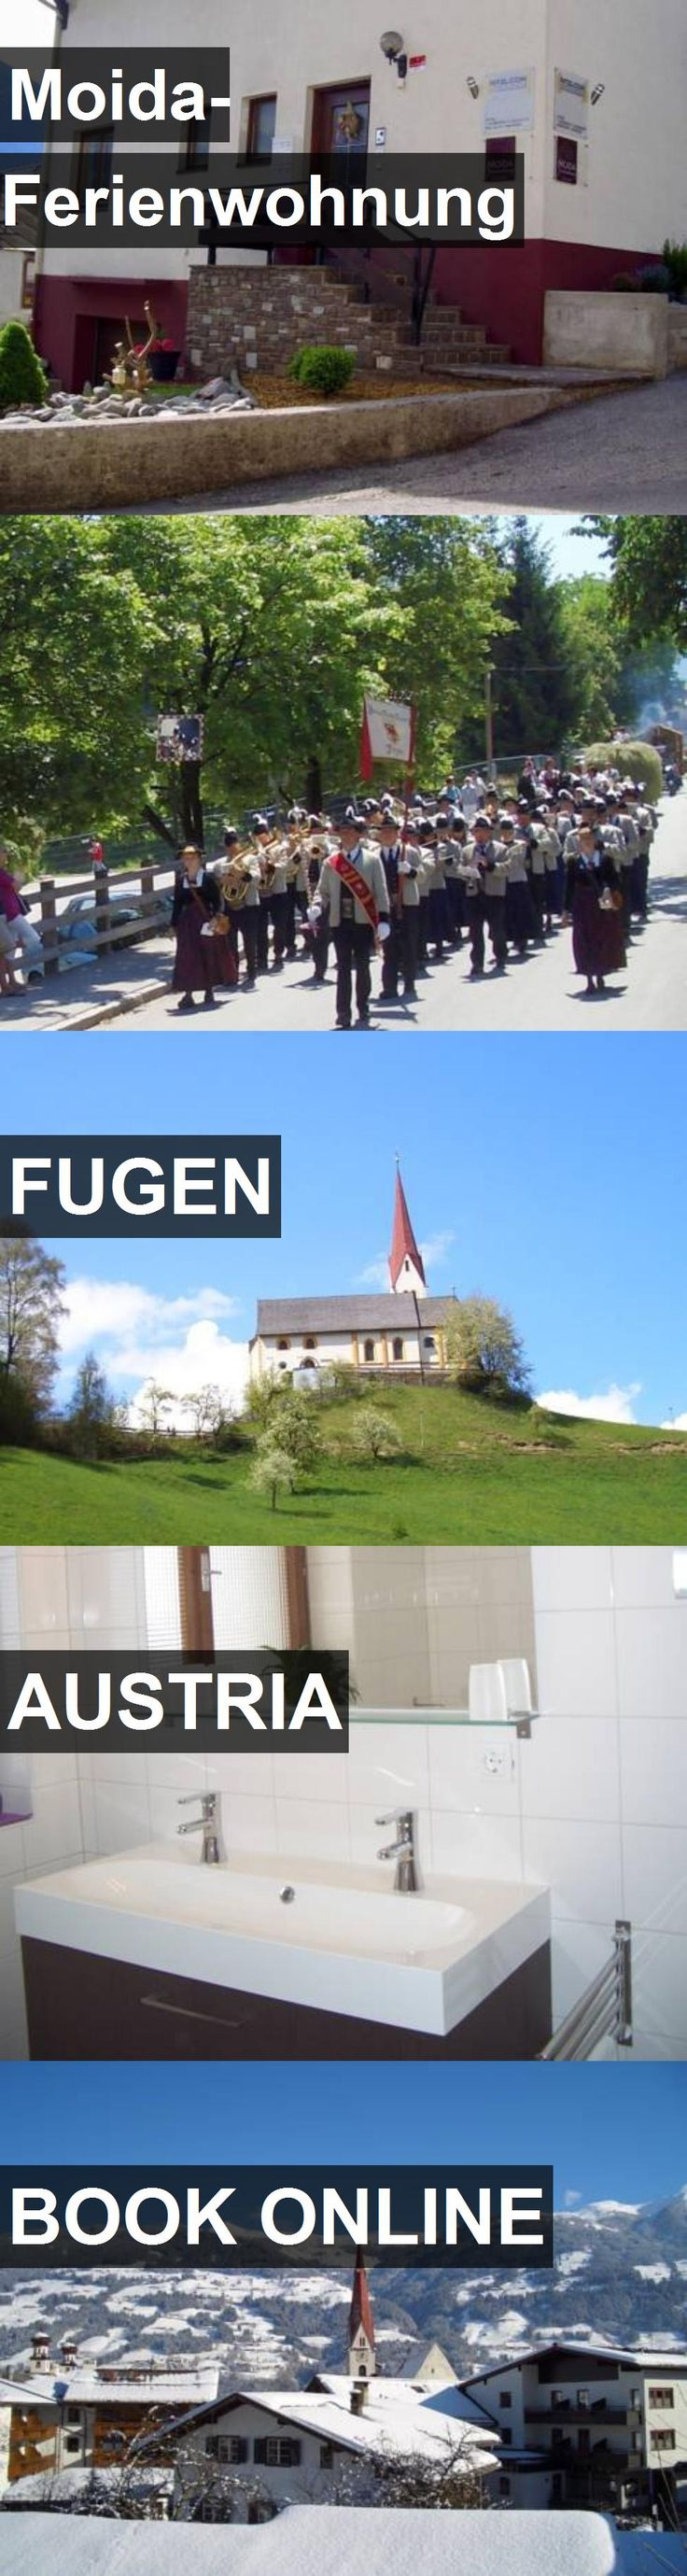 Hotel Moida-Ferienwohnung in Fugen, Austria. For more information, photos, reviews and best prices please follow the link. #Austria #Fugen #travel #vacation #hotel